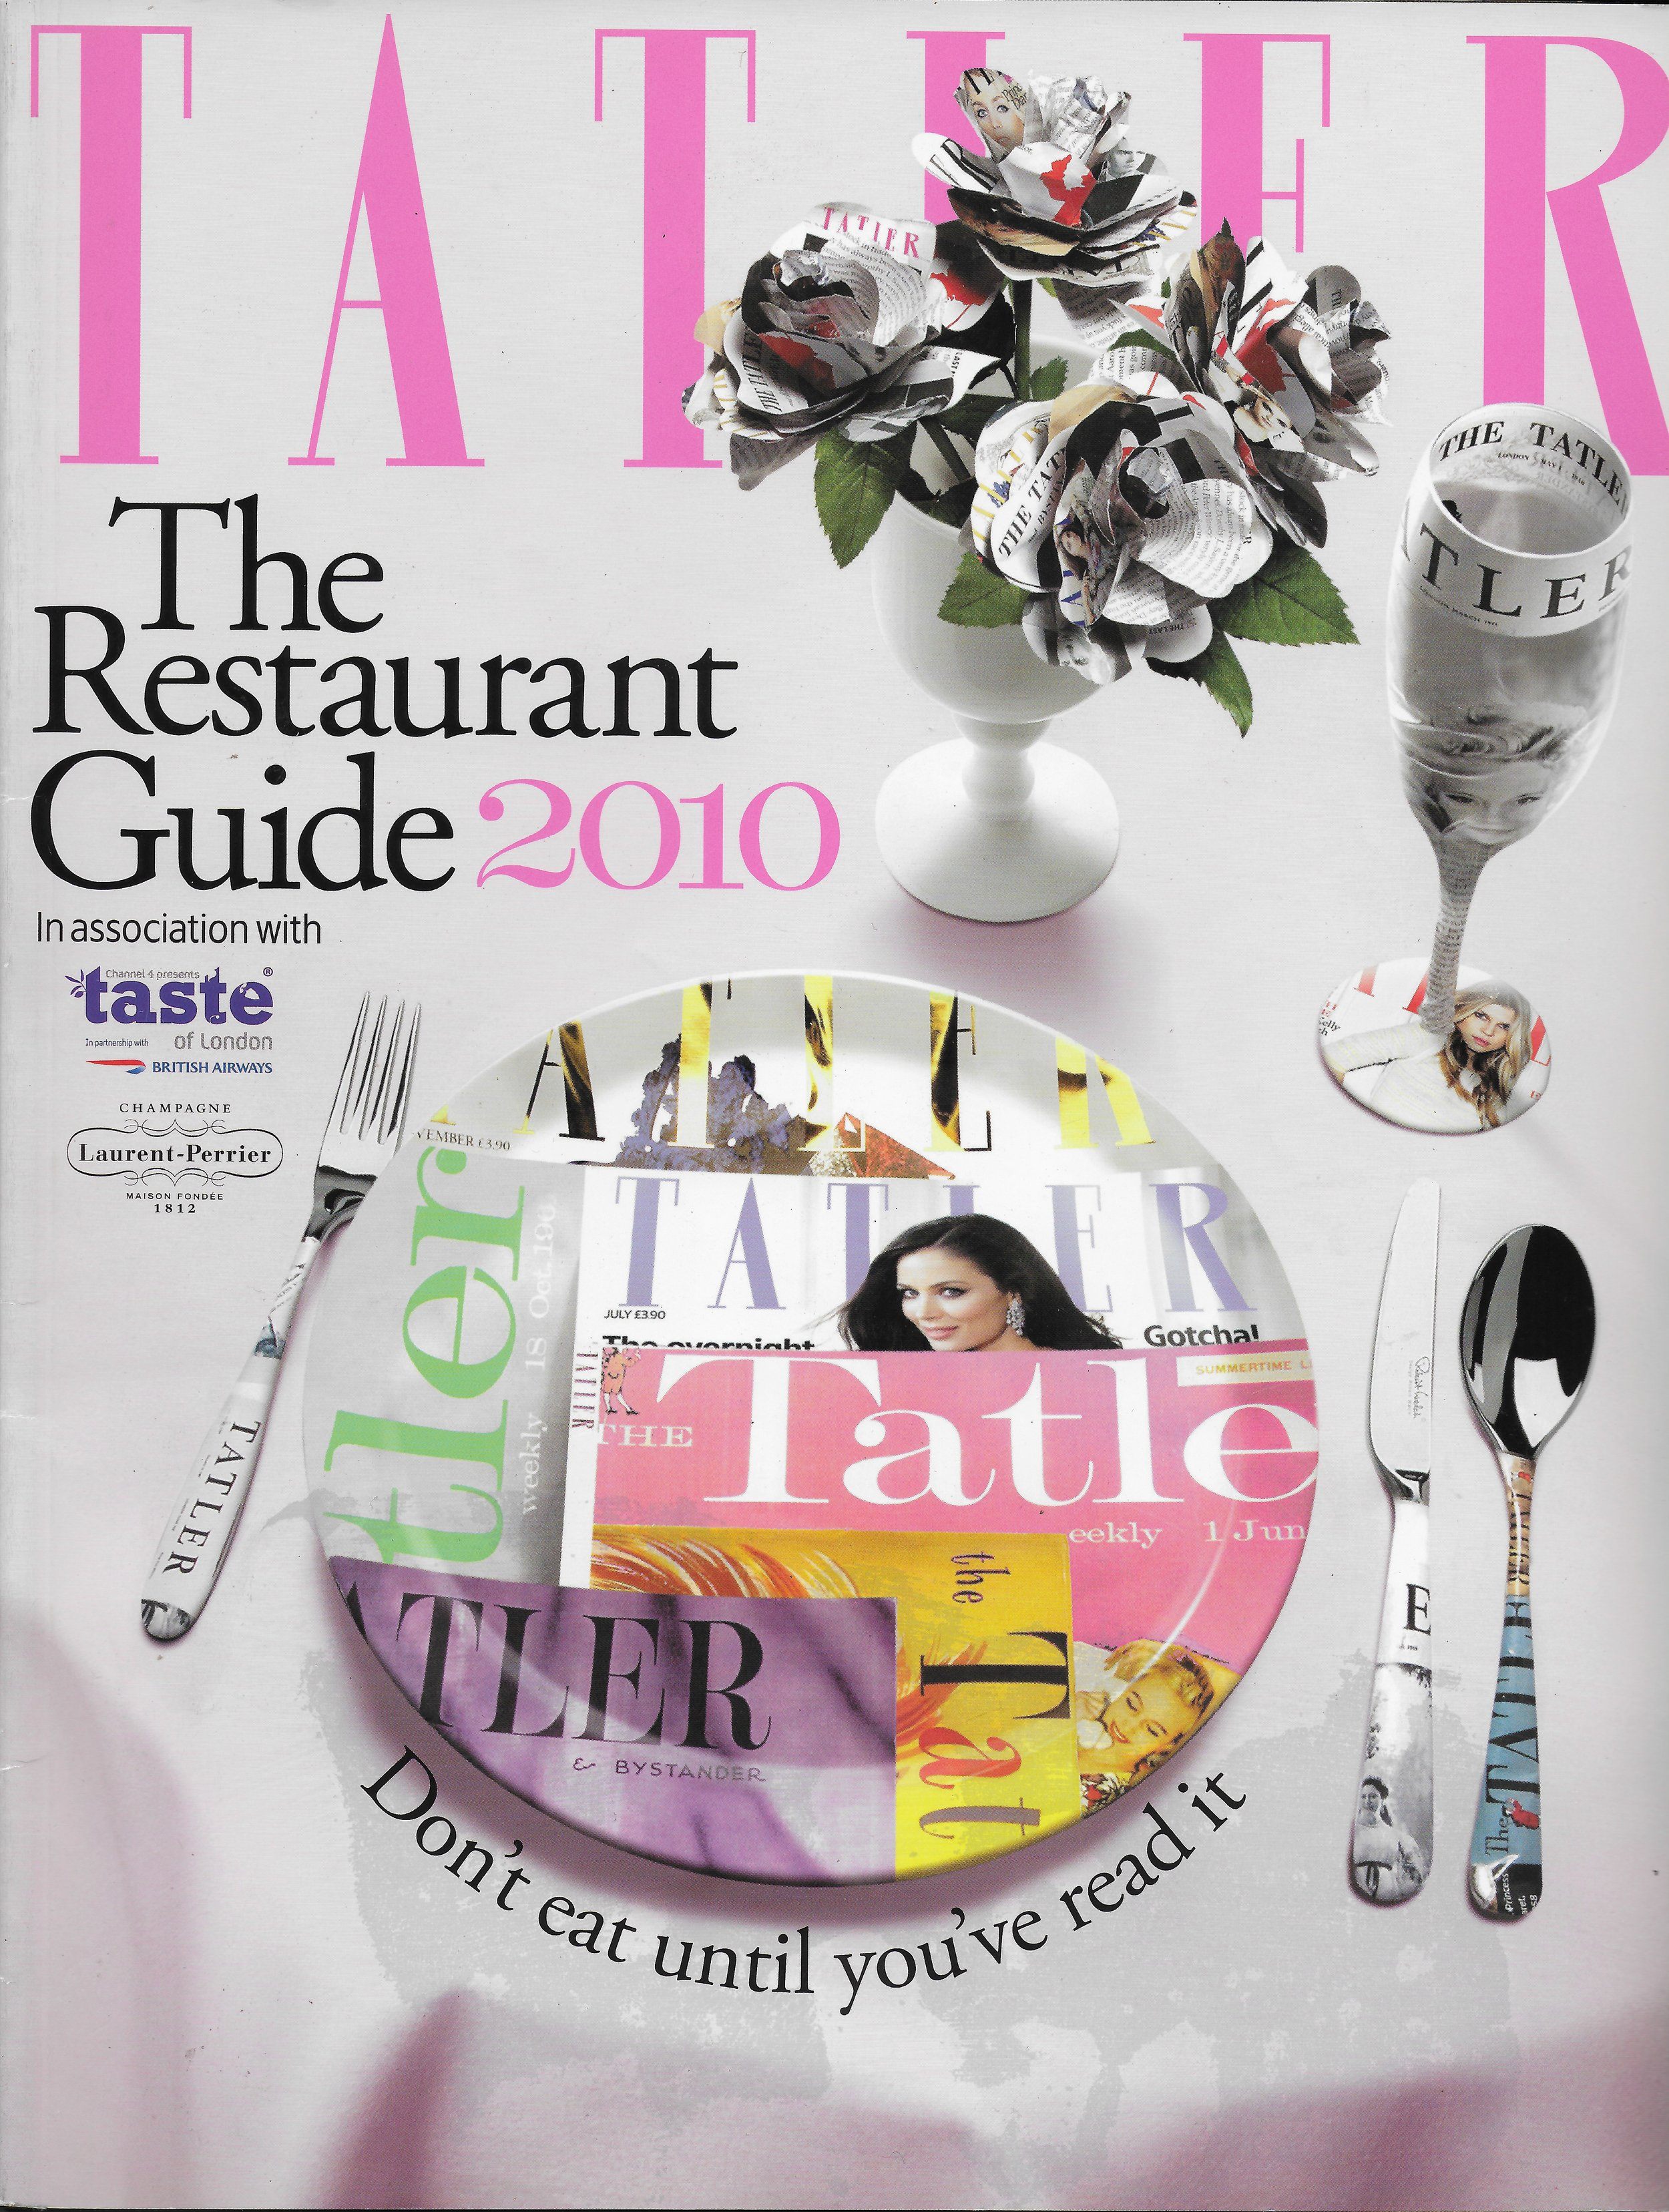 Tatler Restaurant Guide 2010 Cover.jpeg